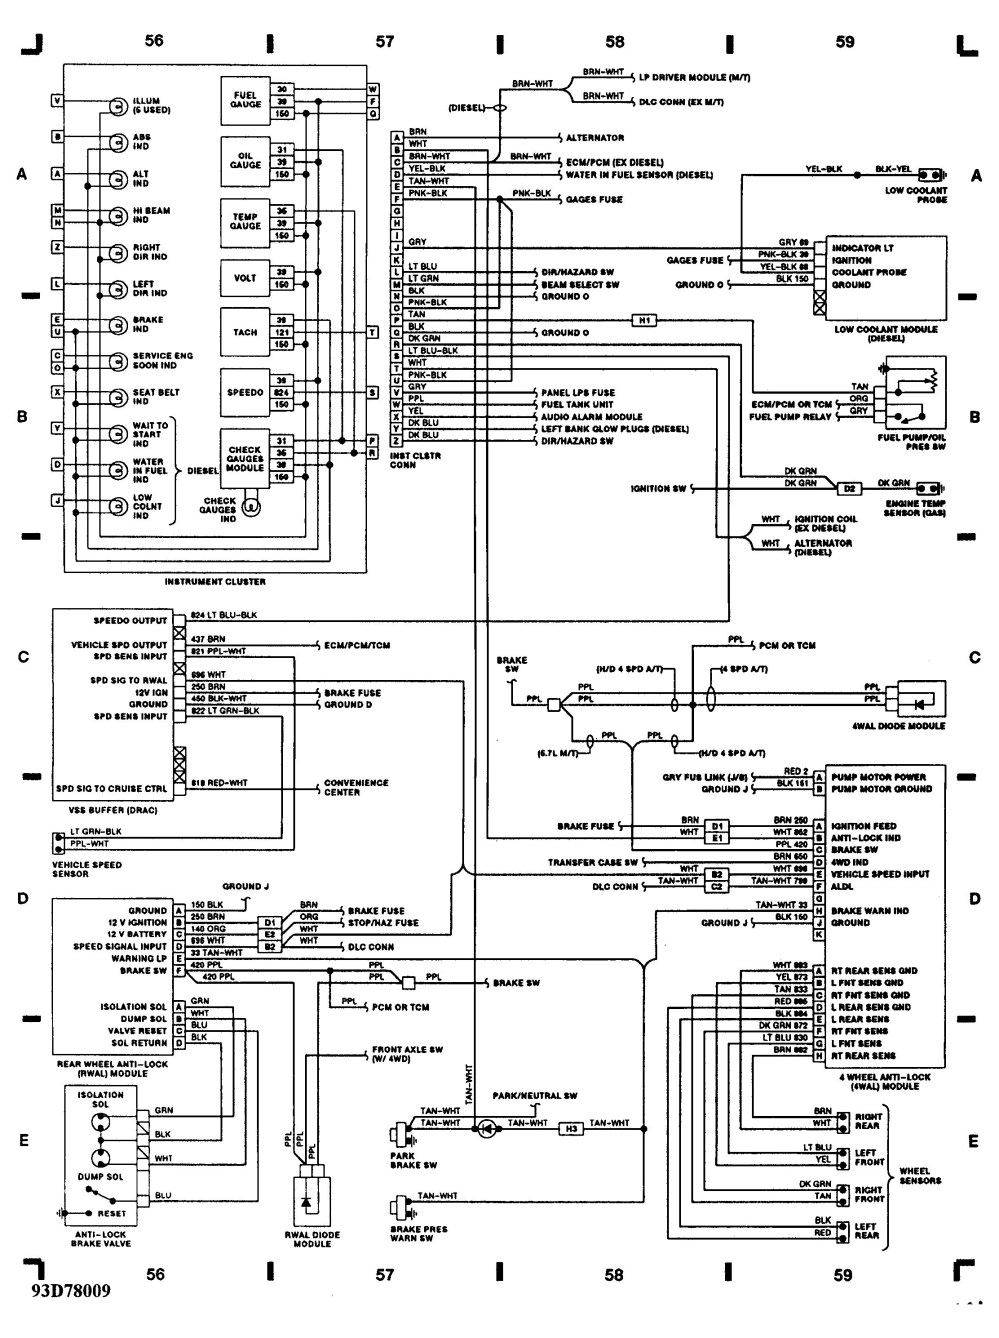 medium resolution of 1995 lumina 3 1 chevy engine diagram wiring diagram view 1995 lumina 3 1 chevy engine diagram